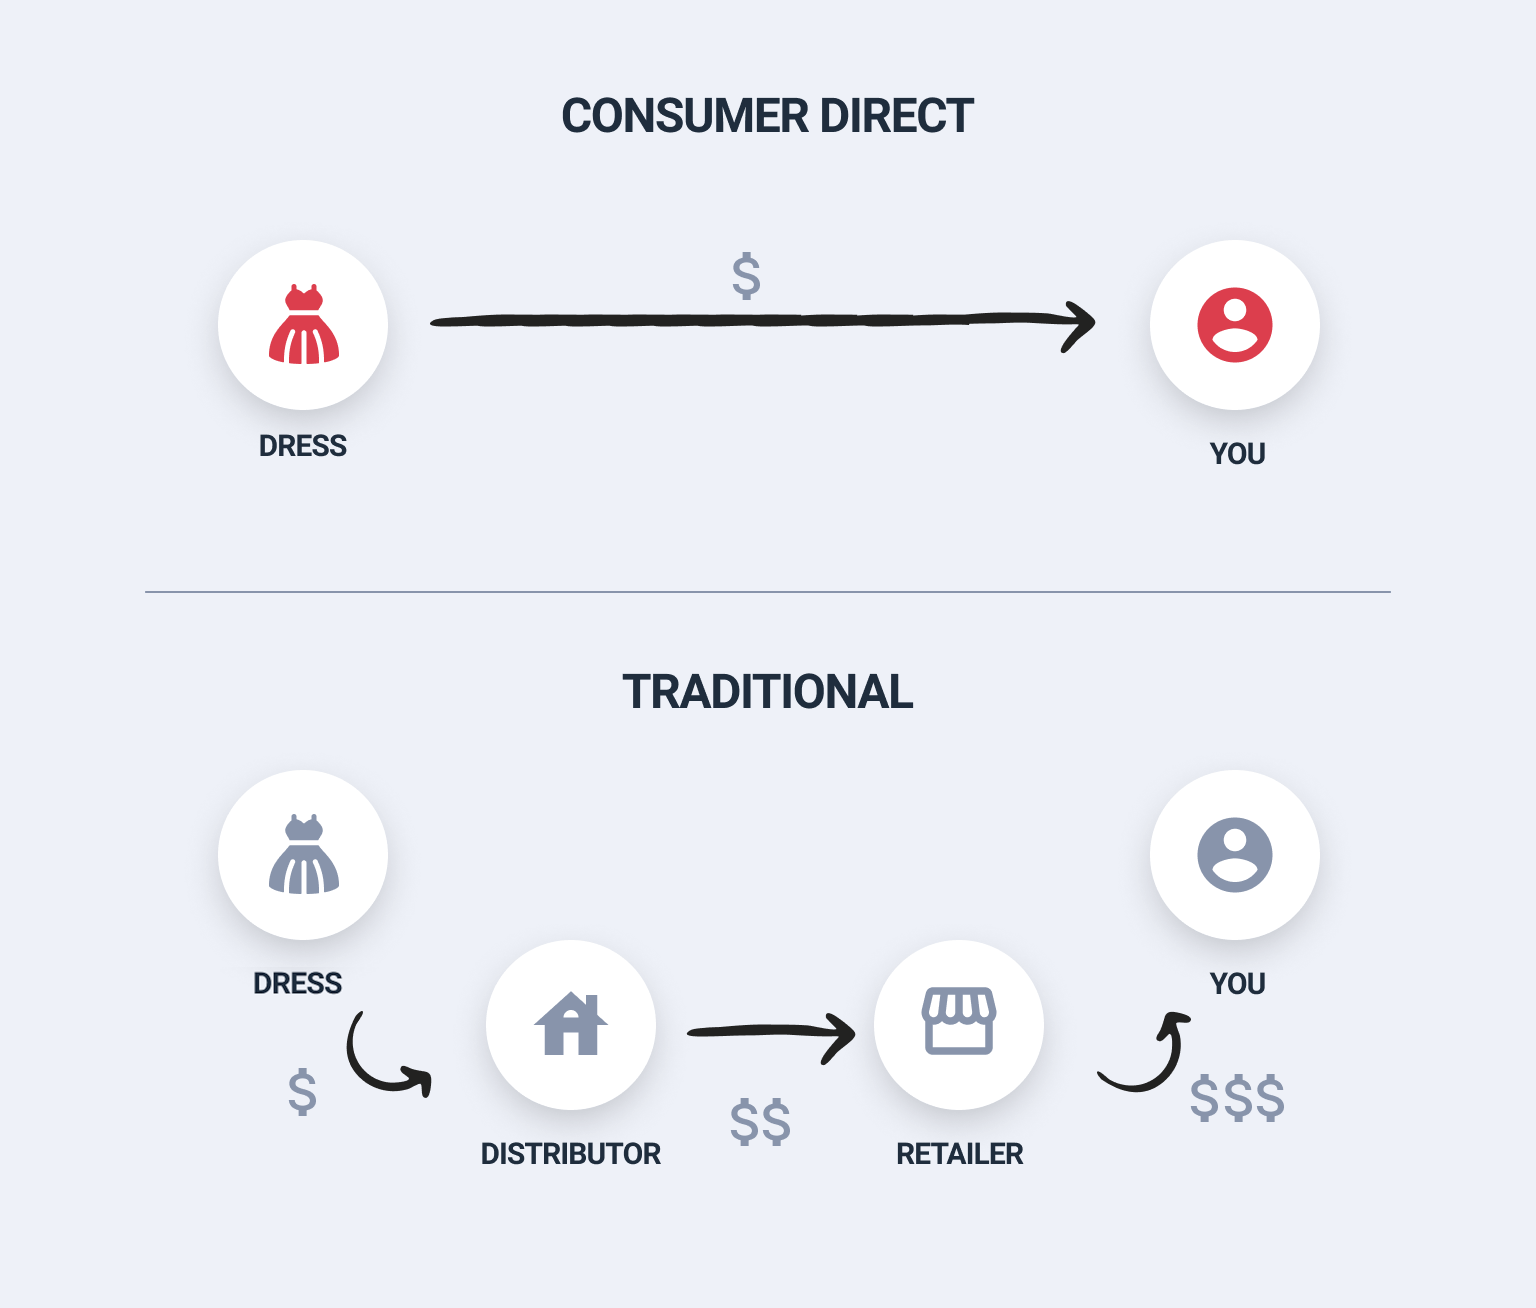 Explanation of consumer-direct model